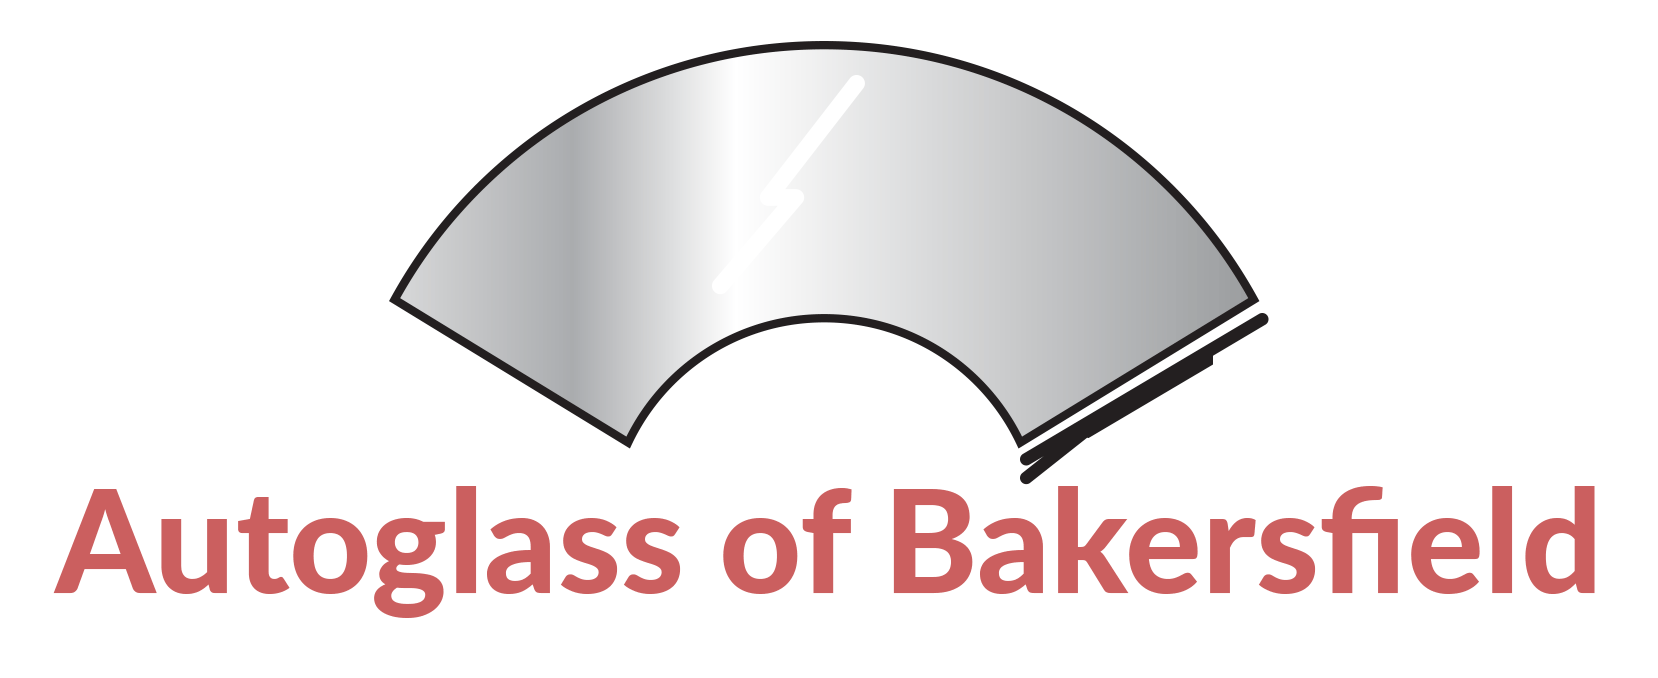 Autoglass of Bakersfield